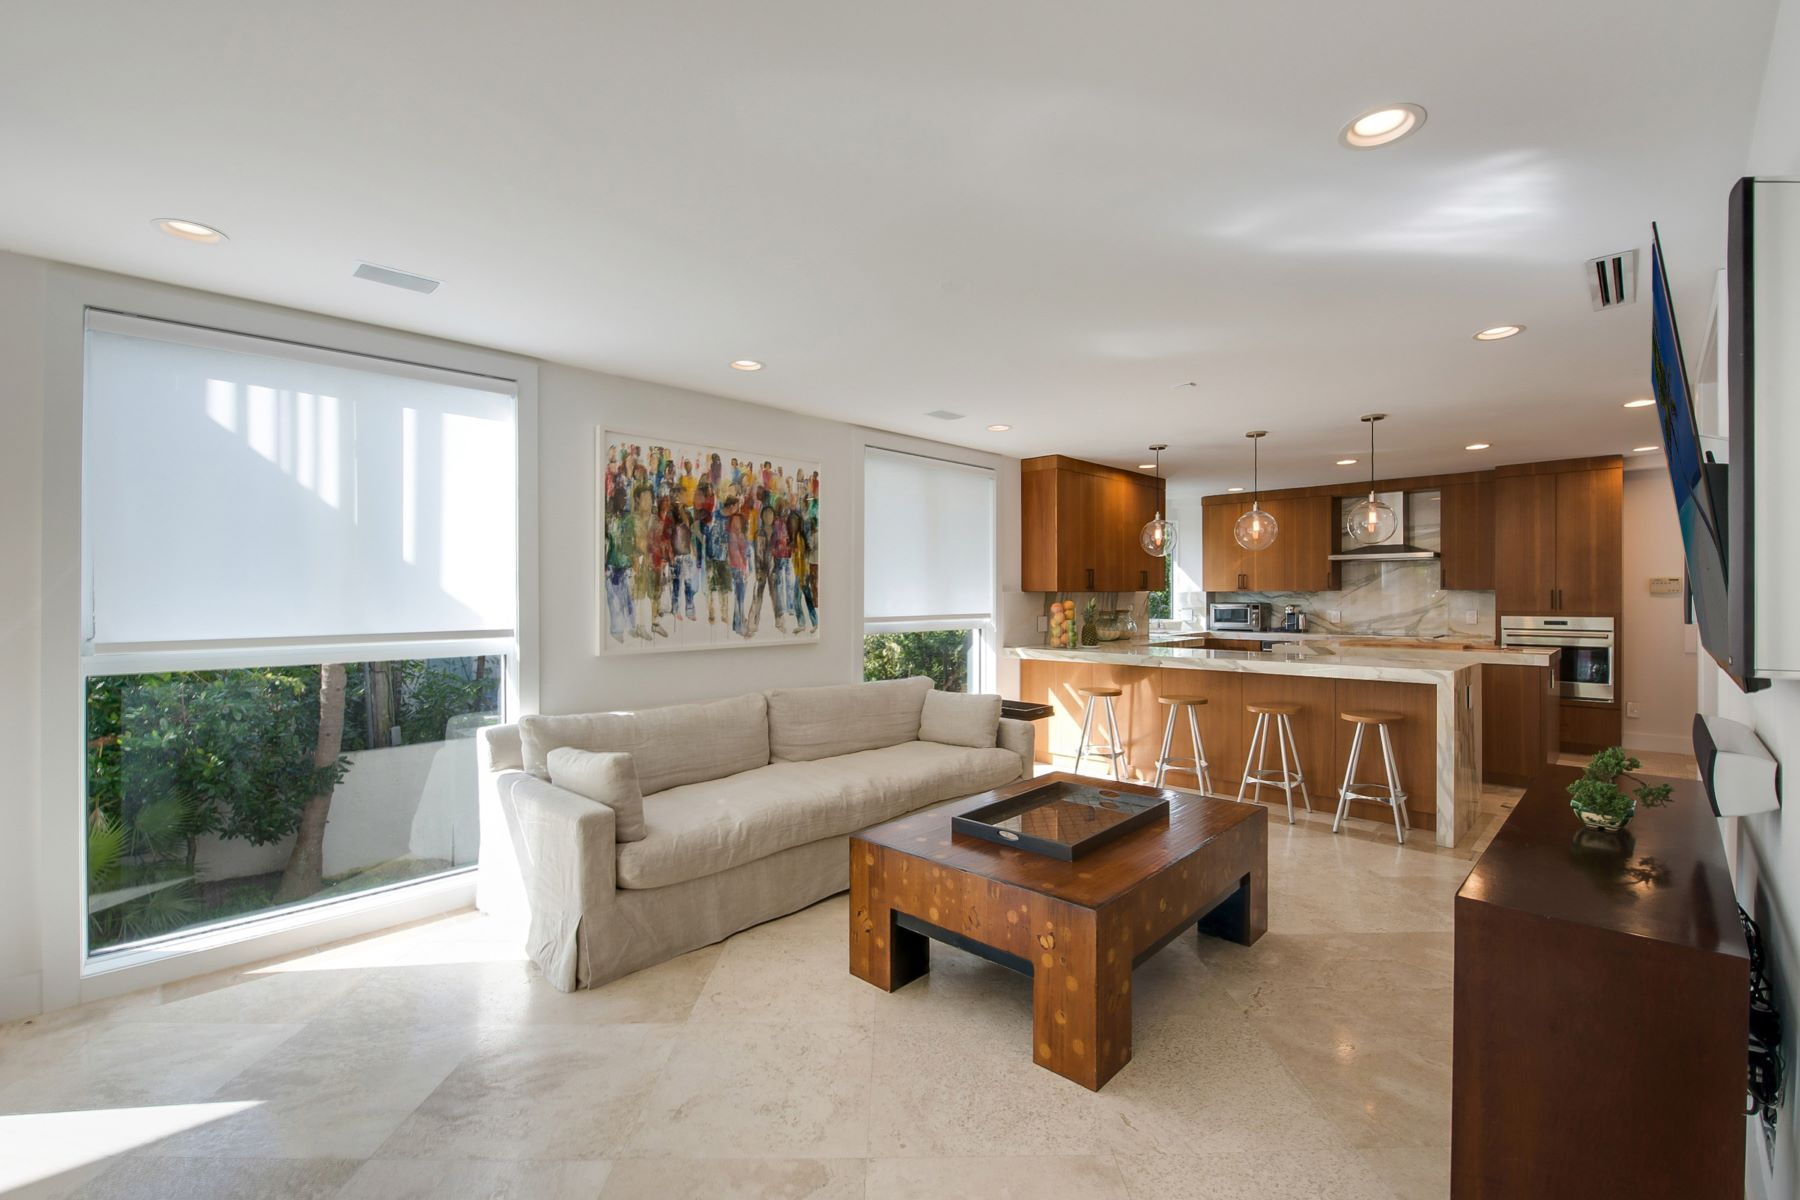 Single Family Homes for Active at 690 Allendale Rd Key Biscayne, Florida 33149 United States